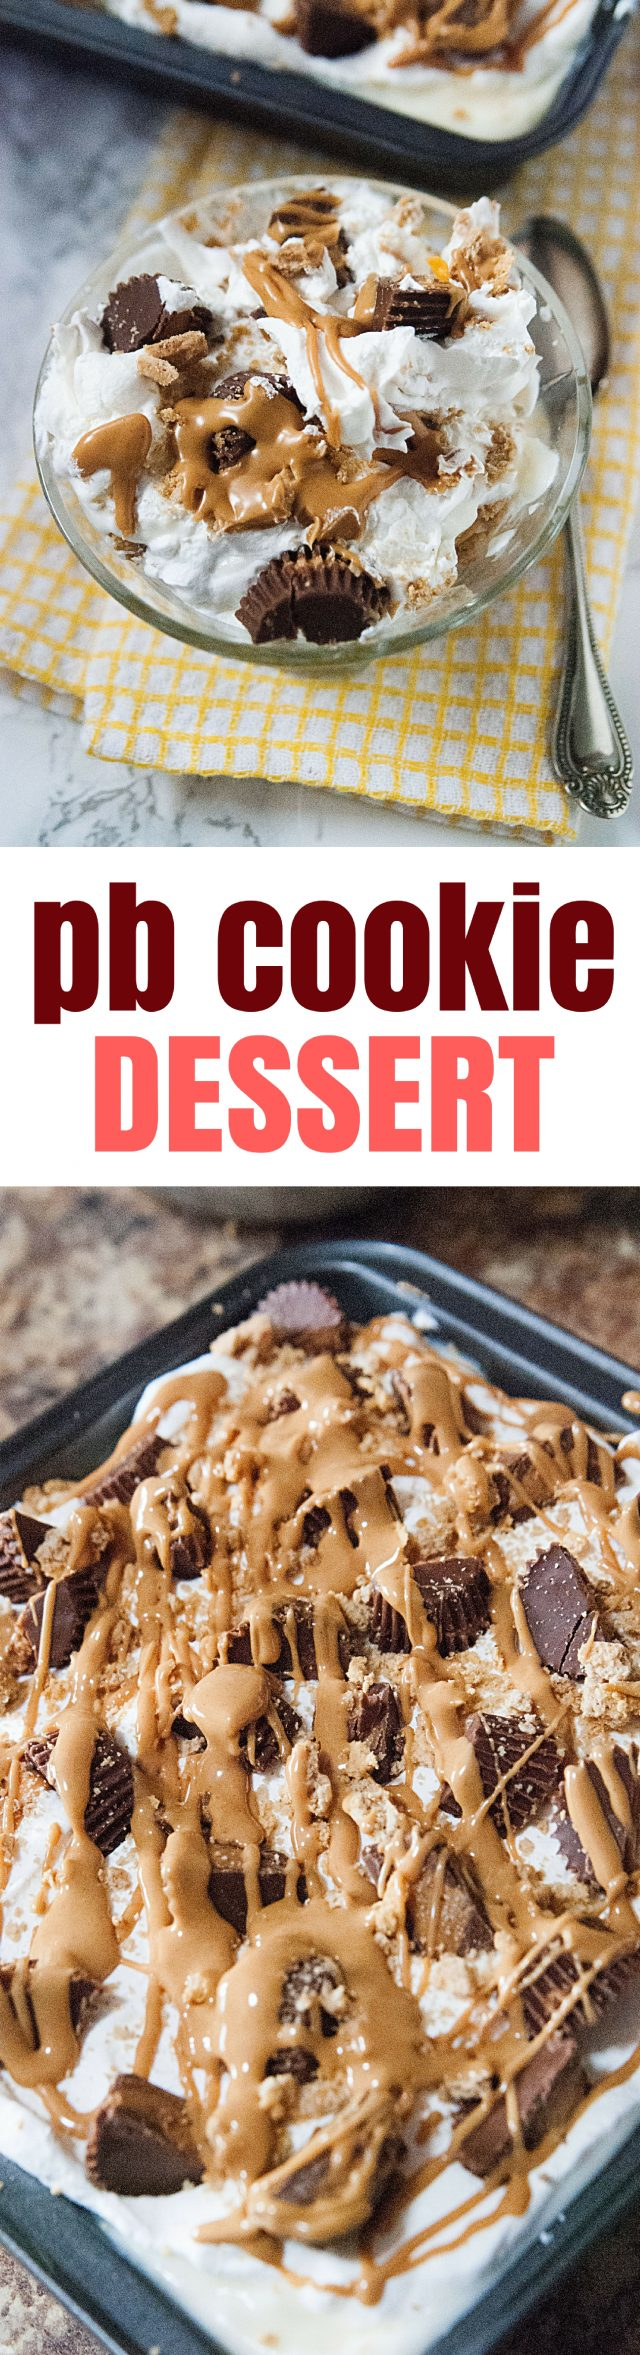 As we head into the warm season (and OH HOW I AM READY FOR SUMMER), I have backyard BBQs and potluck parties on the mind.  The summer always brings some kind of event where I want to bring a little something special, and so today's recipe is an ode to summer parties!   Peanut butter cookie dessert - an easy recipe to put together the night before and it's a cold way to cool off in the heat.